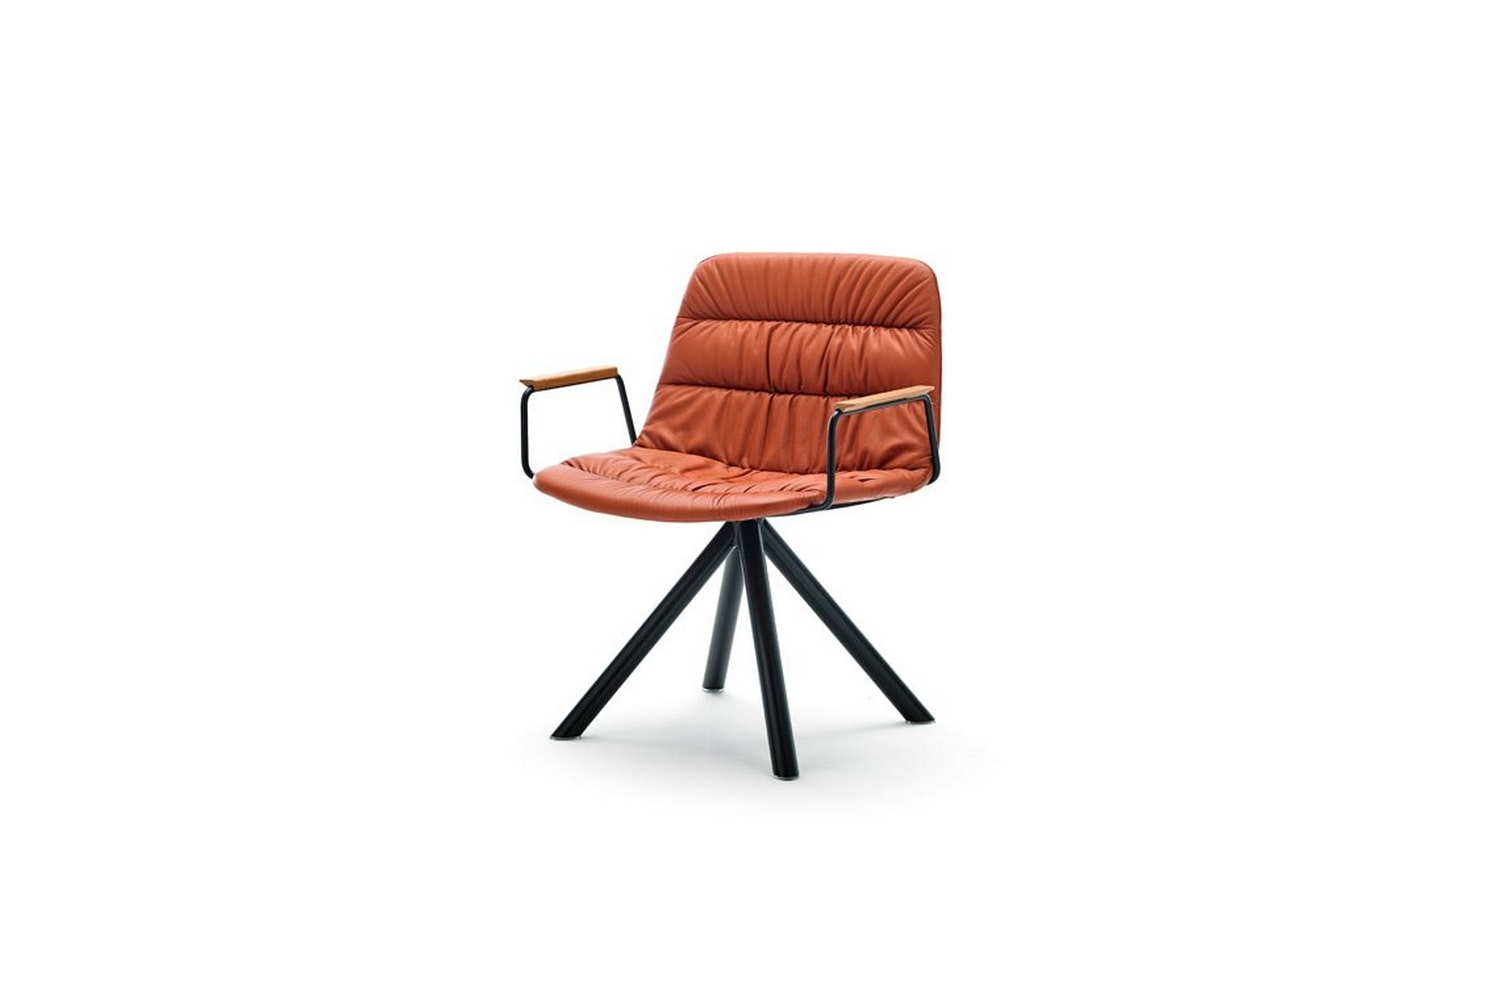 Maarten Armchair by Victor Carrasco for Viccarbe